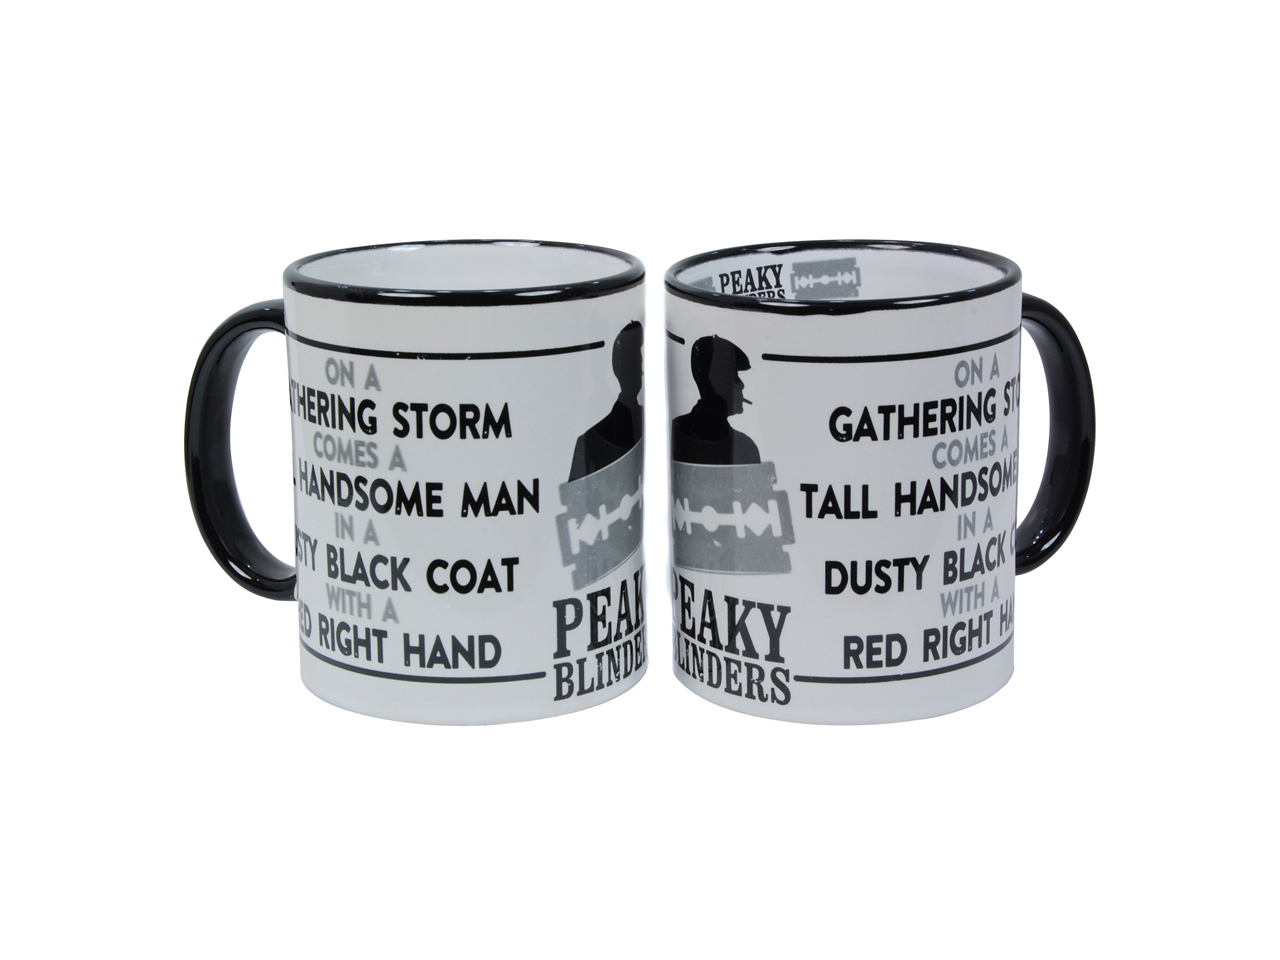 Peaky Blinders Red Right Hand On A Gathering Storm Mug Shelby By Order Of The Iconic Gangster British TV Kapow